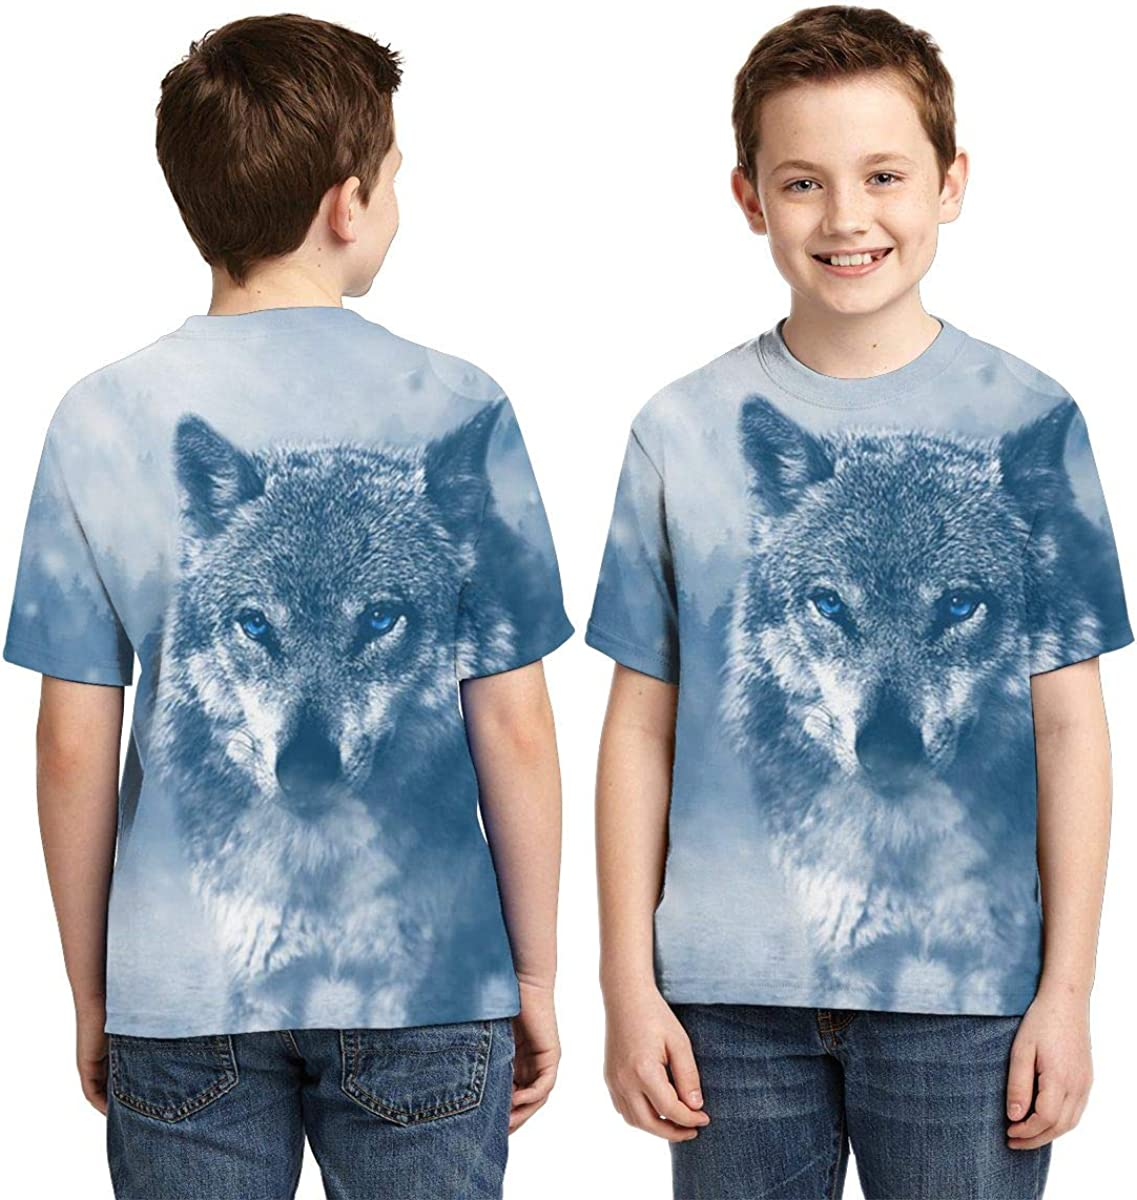 Wolf Predator Animal Kids Print Graphic Tee Short Sleeve T-Shirt